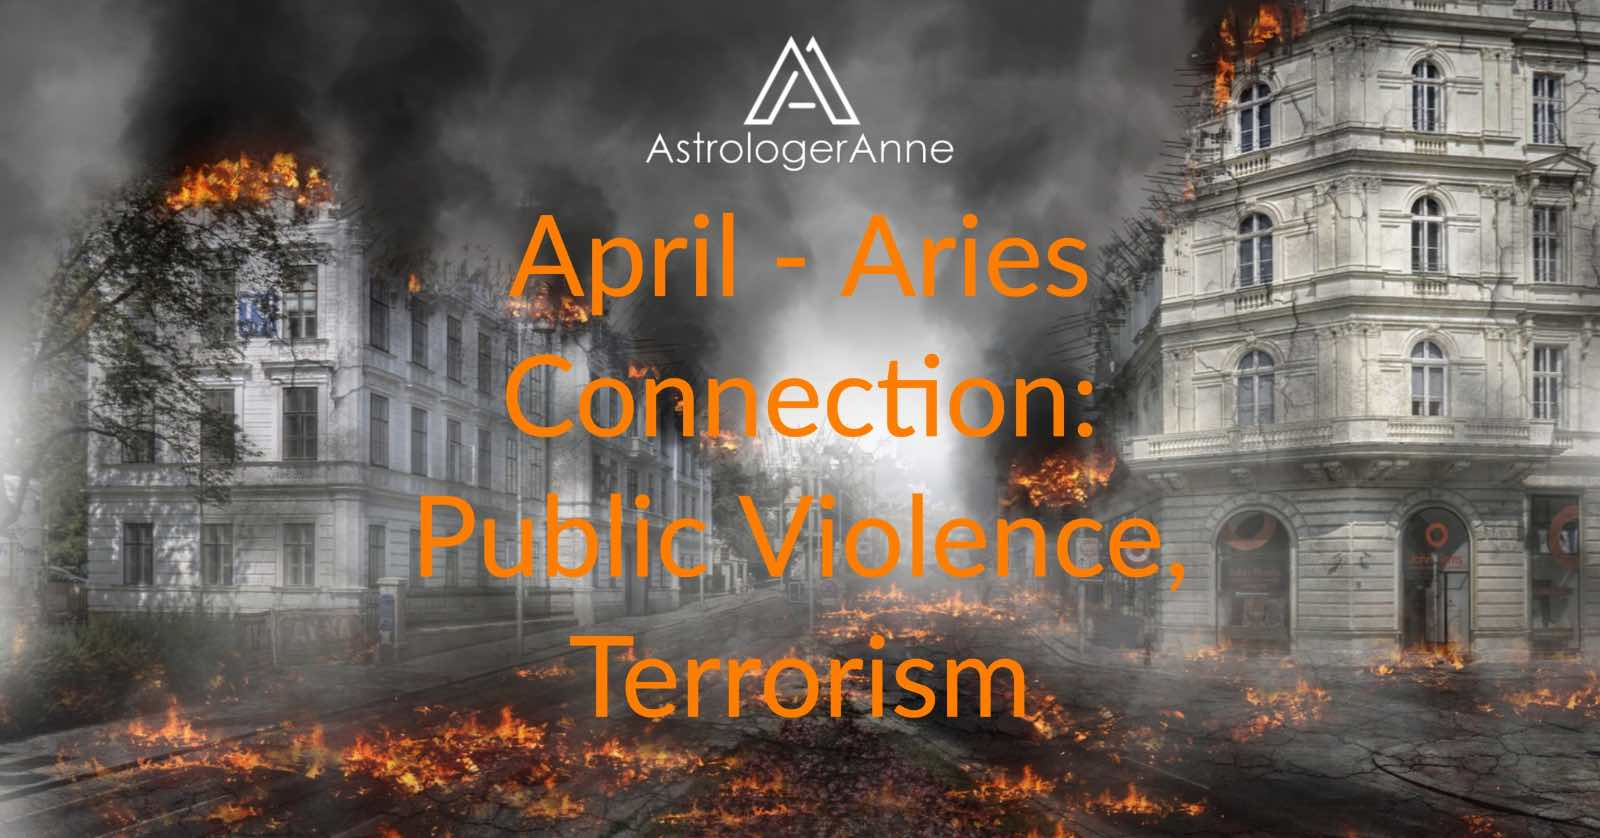 Aries time - history of violence